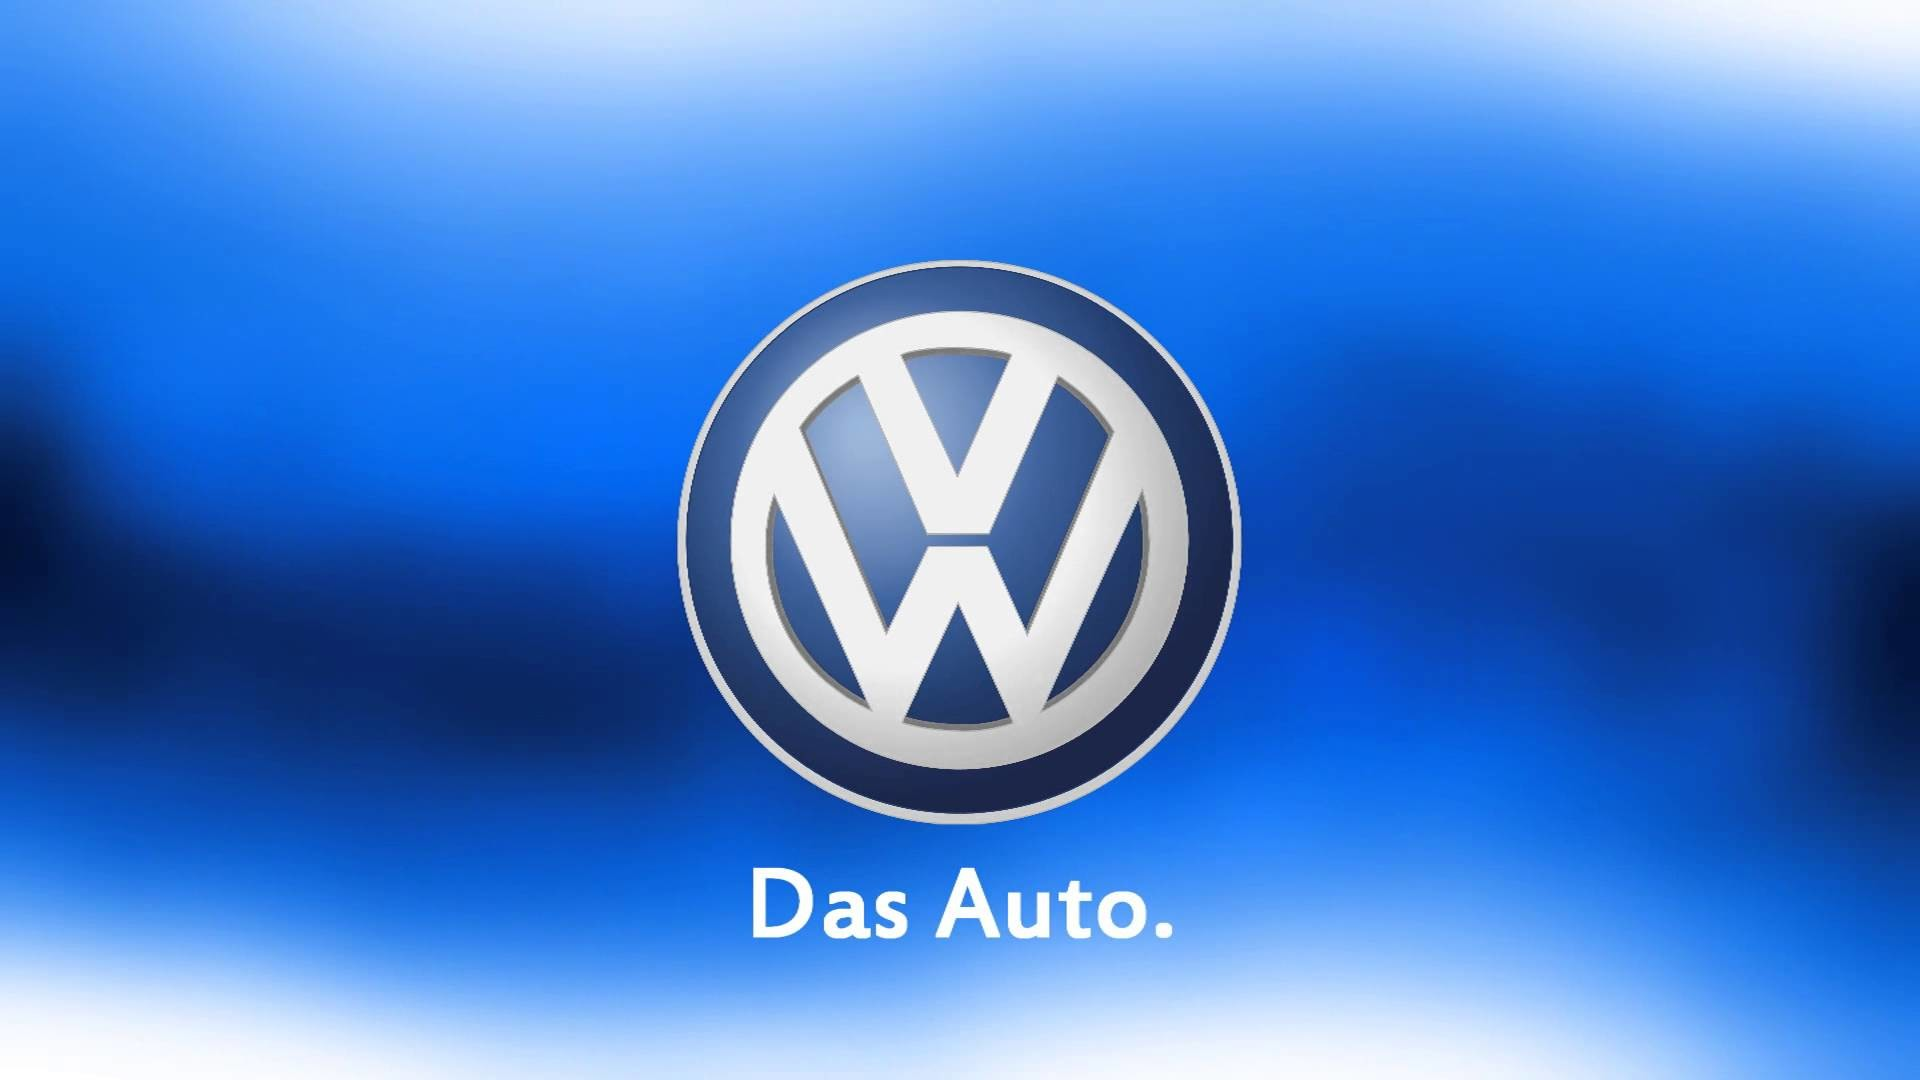 Res: 1920x1080, Download Volkswagen Logo Wallpaper Gallery